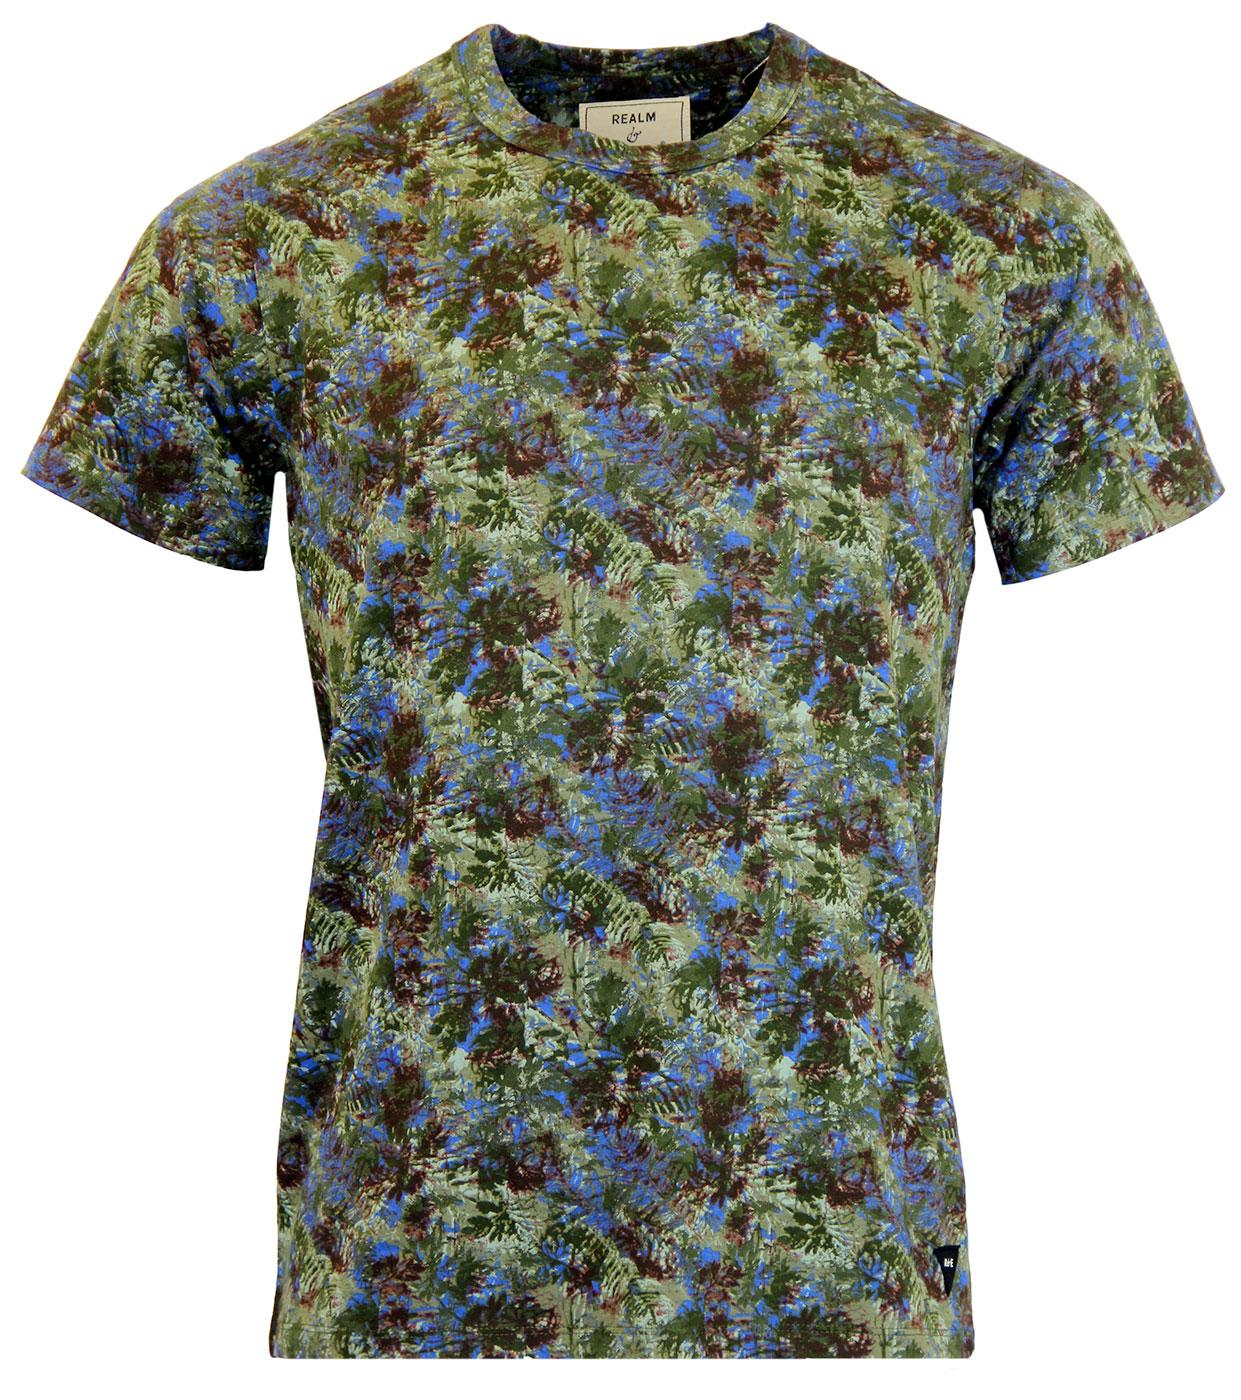 REALM & EMPIRE Marston Retro Trench Camo T-Shirt